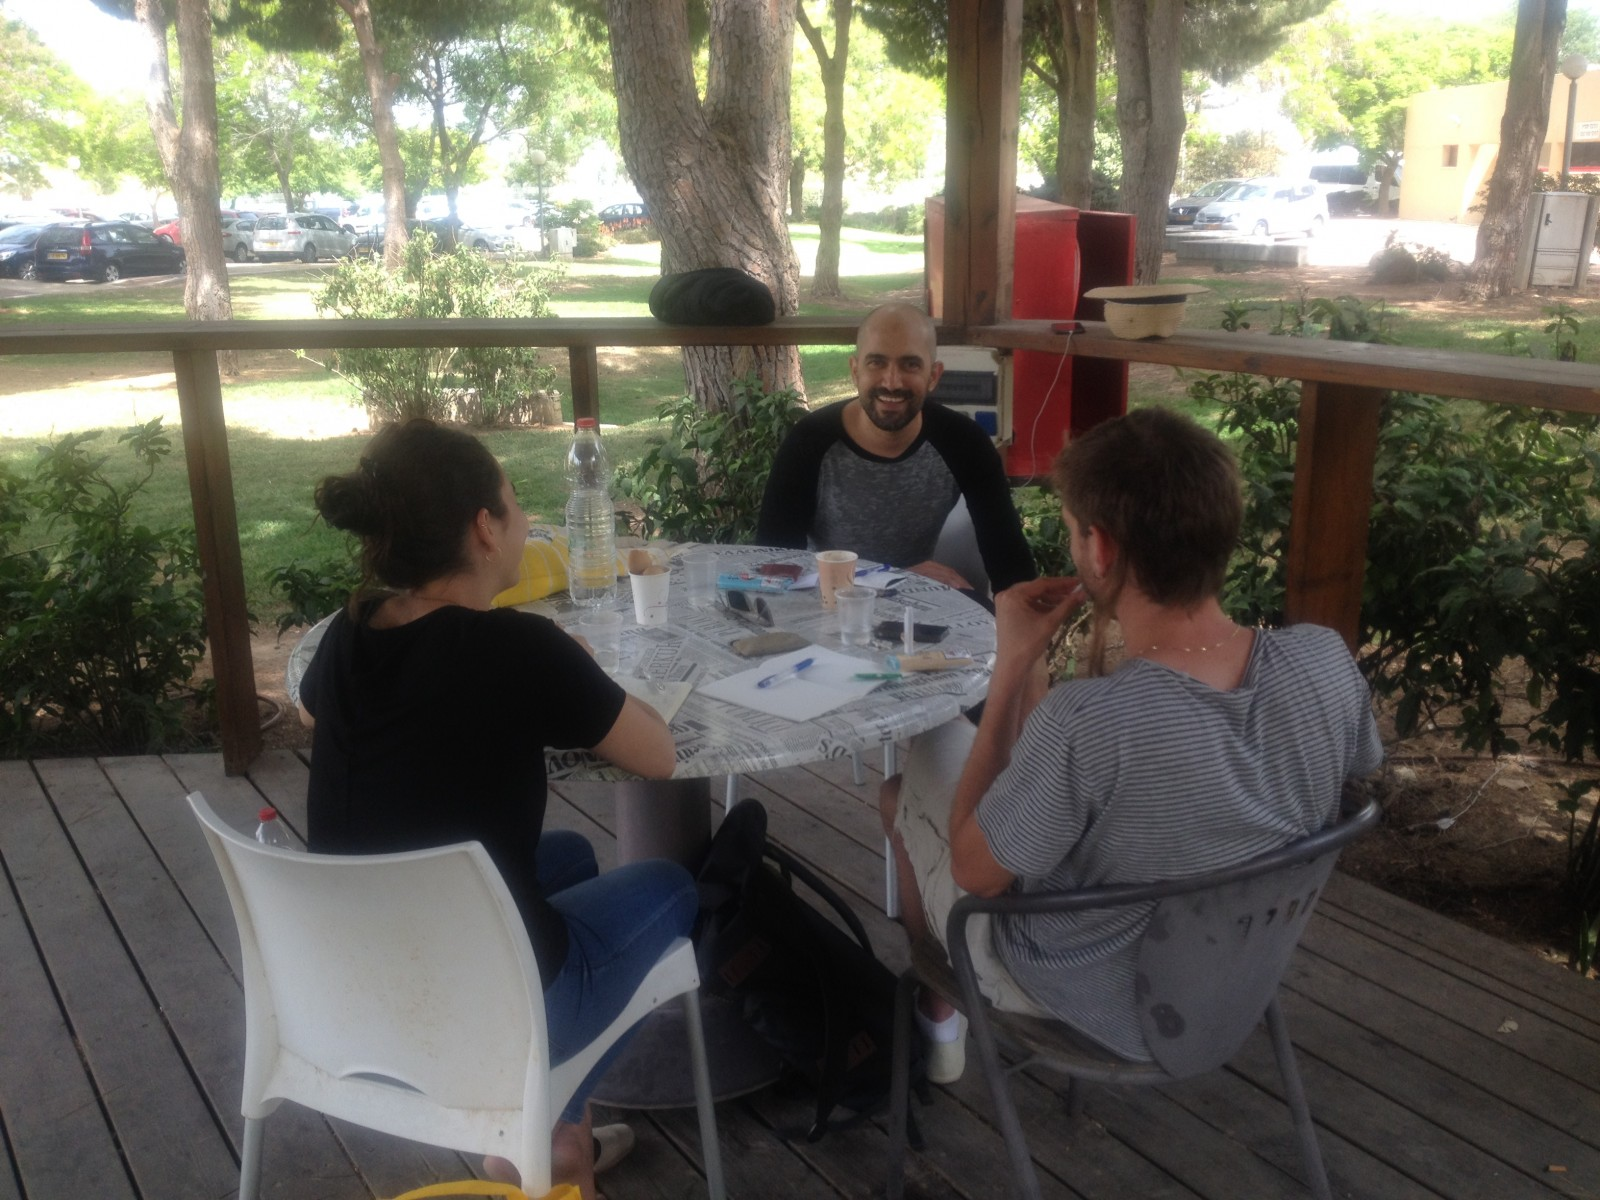 Individual Meeting with director/producer Shlomi Elkabetz